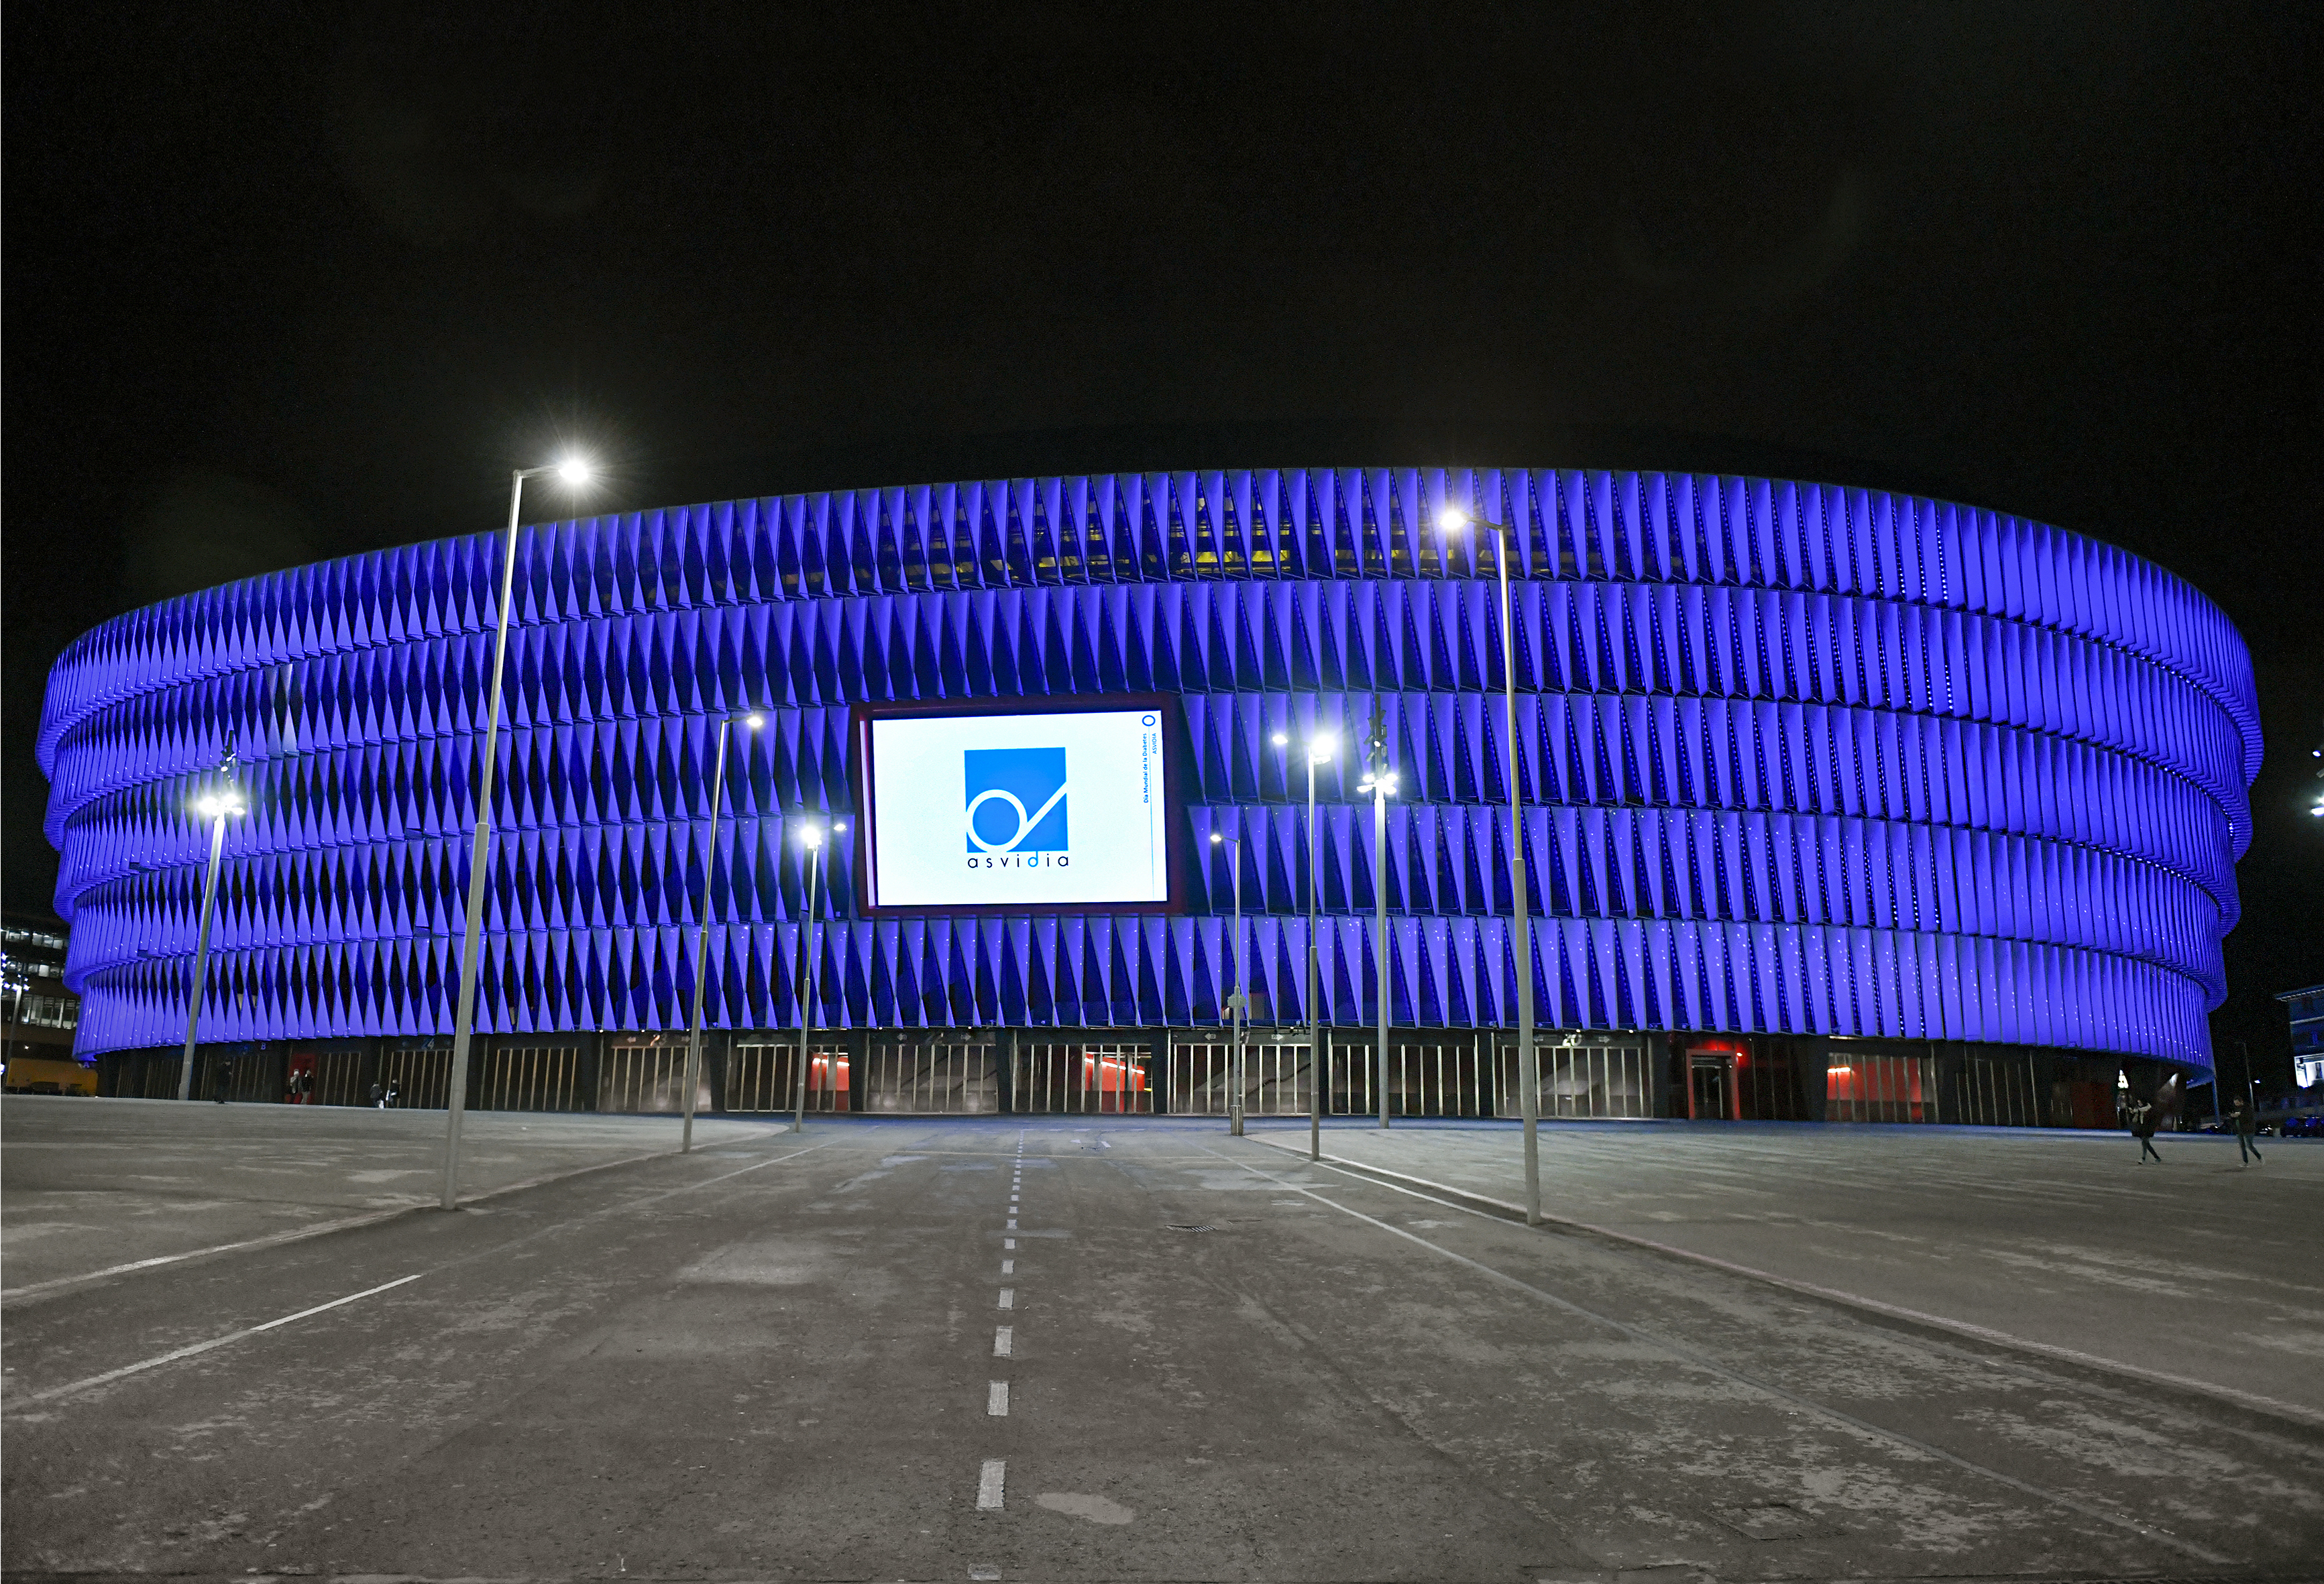 San Mames in blue, supporting the World Diabetes Day